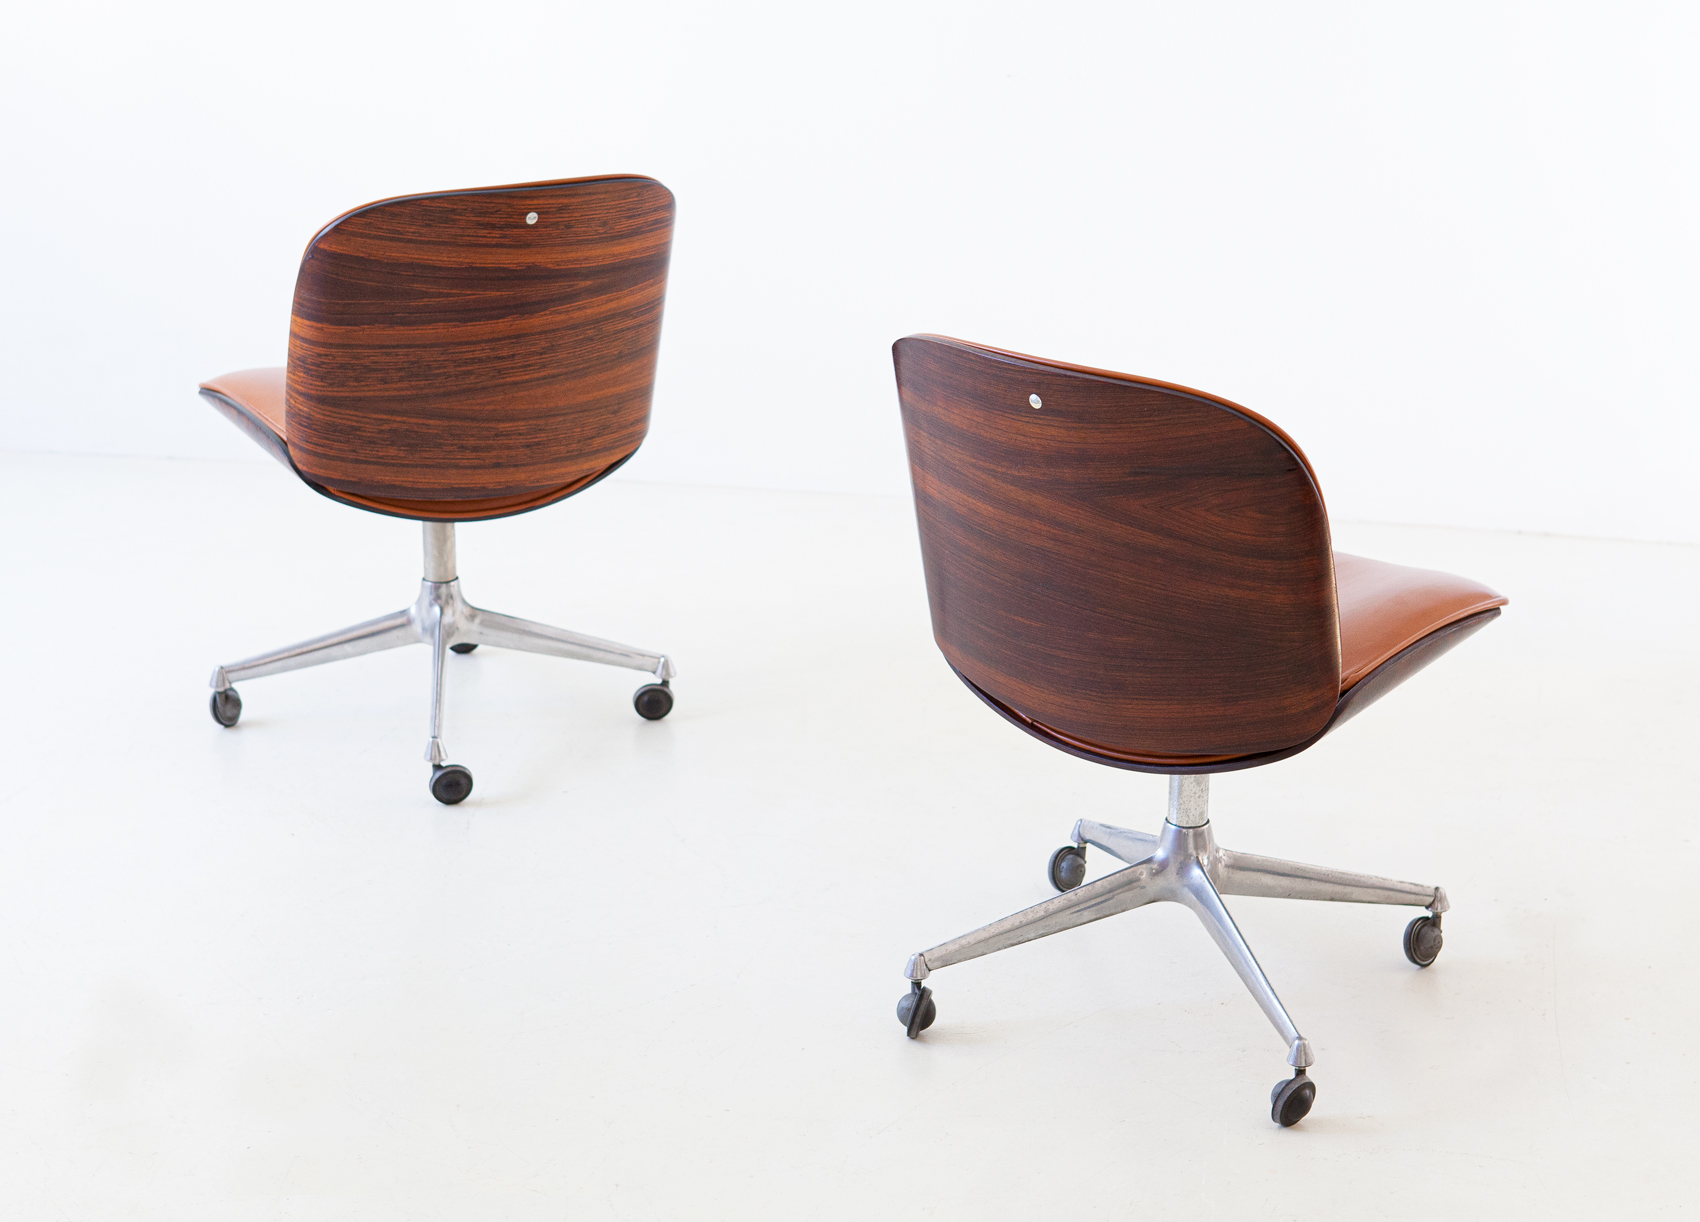 1950s-rosewood-and-cognac-leather-swivel-chair-by-ico-parisi-for-mim-5-se328